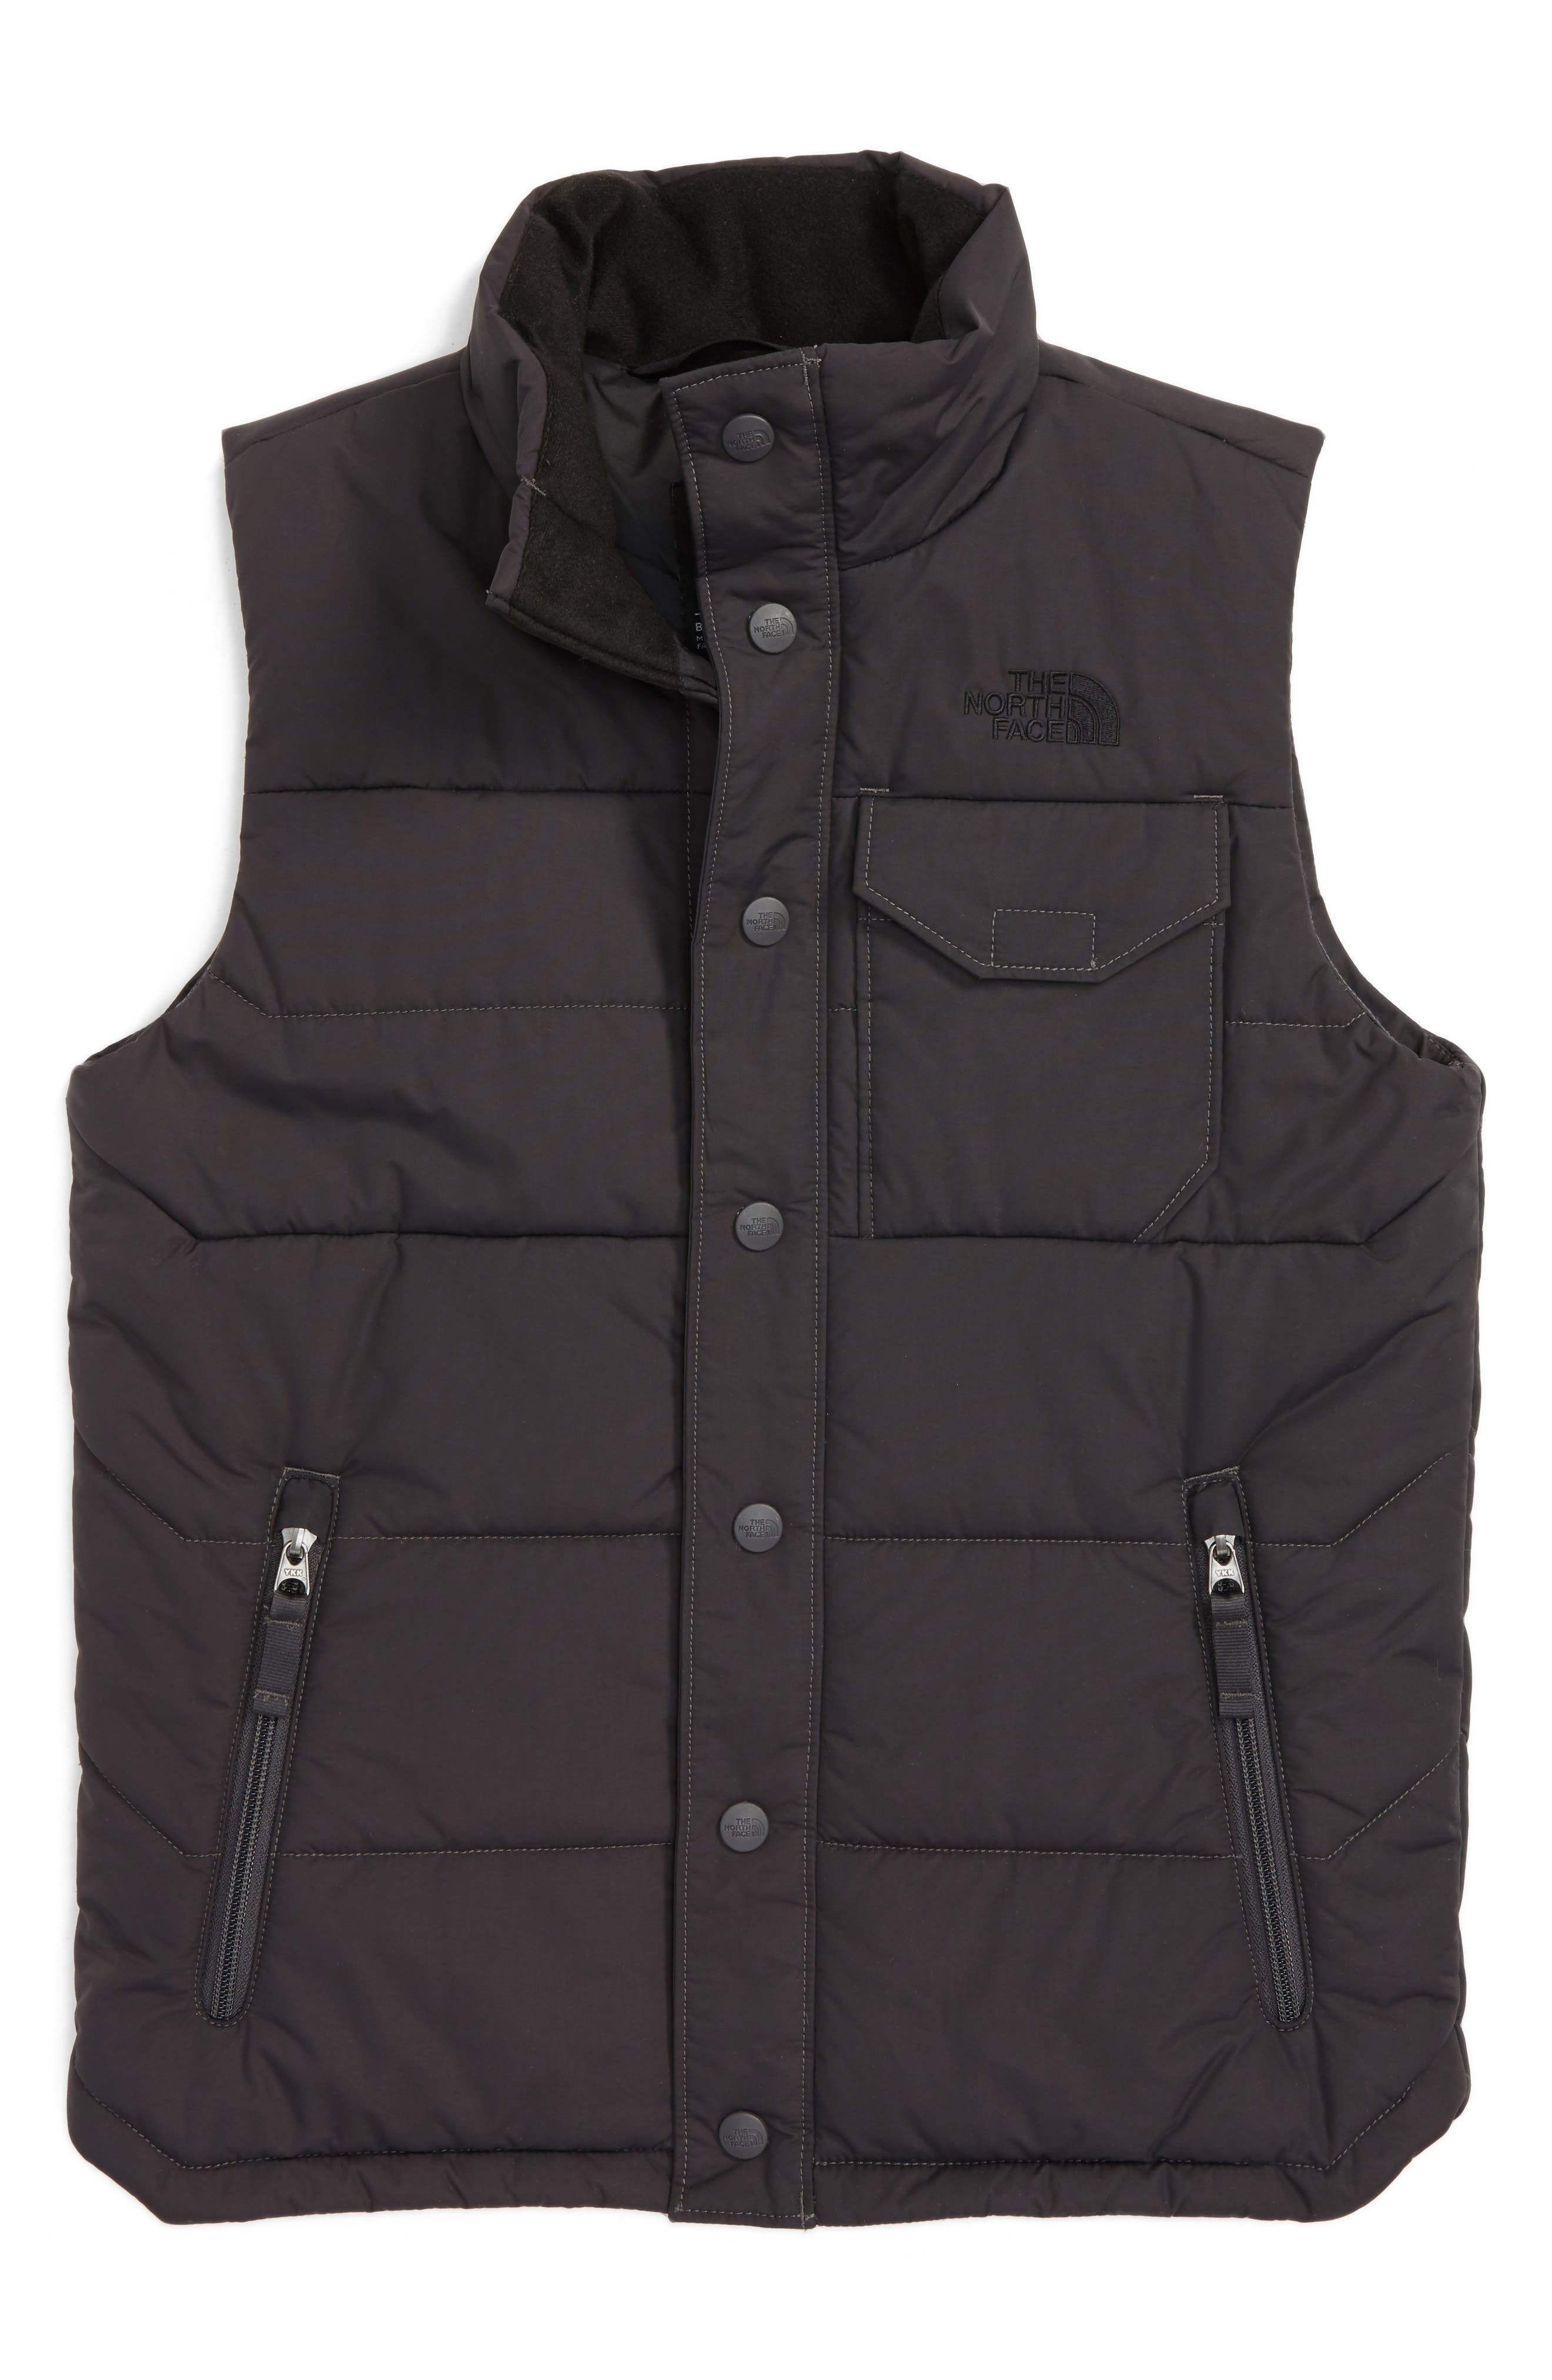 Patrick's Point Quilted Down Vest,                             Main thumbnail 1, color,                             021